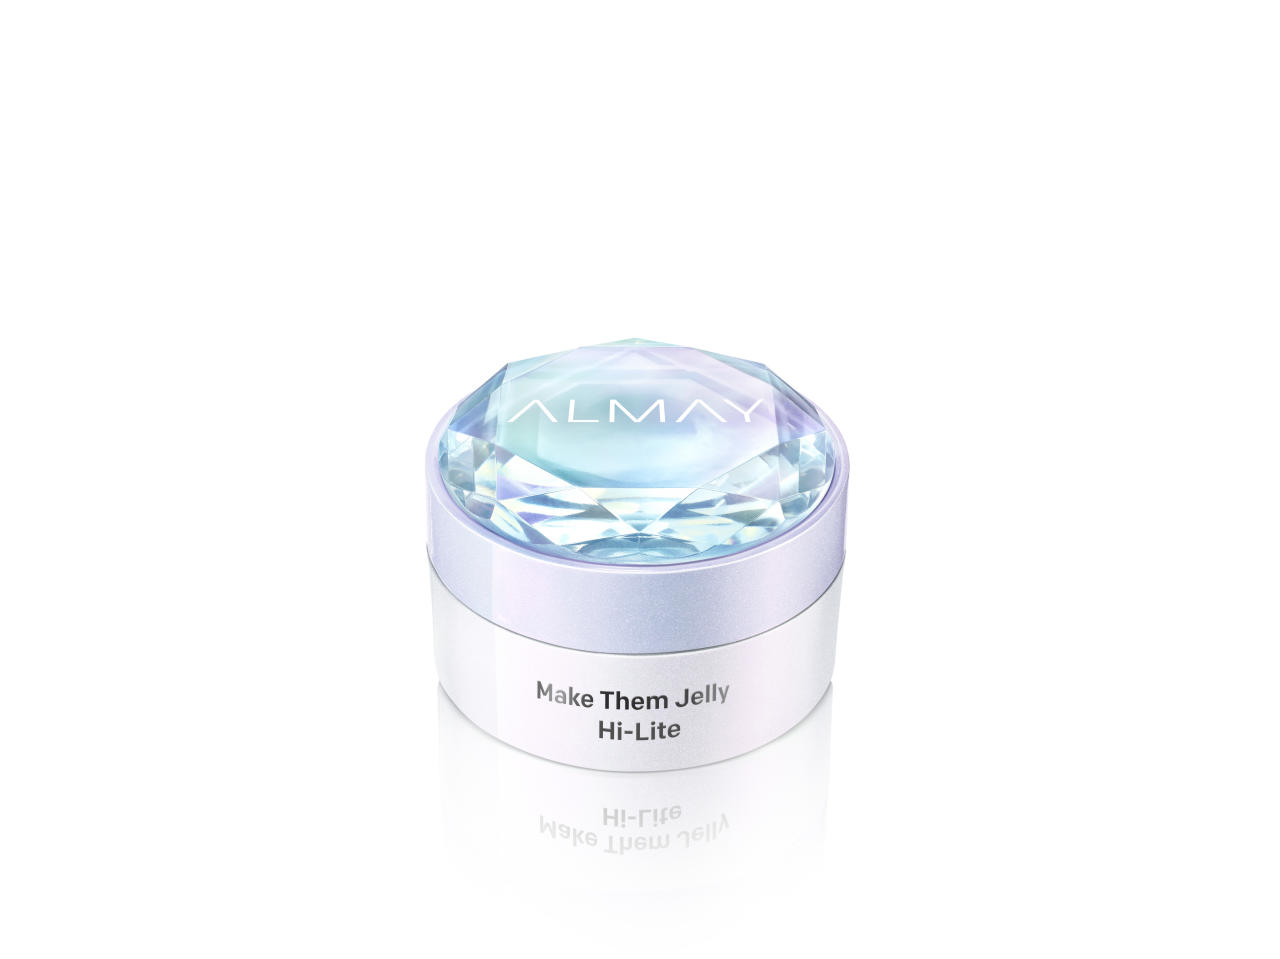 "<p>This multifunctioning illuminator gives off a supercharged dewy finish that wears great on cheekbones, eyes, and lips. ($15, <a rel=""nofollow"" href=""https://www.ulta.com/make-them-jelly-hi-lite?productId=xlsImpprod17631349&sku=2526464&cmpid=PS_Non!google!Product_Listing_Ads&cagpspn=pla&CATCI=pla-194991011310&CAAGID=17983613550&CAWELAID=330000200001340573&catargetid=330000200000763201&cadevice=c&gclid=EAIaIQobChMIy6m49ffp2QIVUlqGCh04JAbTEAYYASABEgJewfD_BwE"">ulta.com</a>) (Photo: courtesy of brand) </p>"